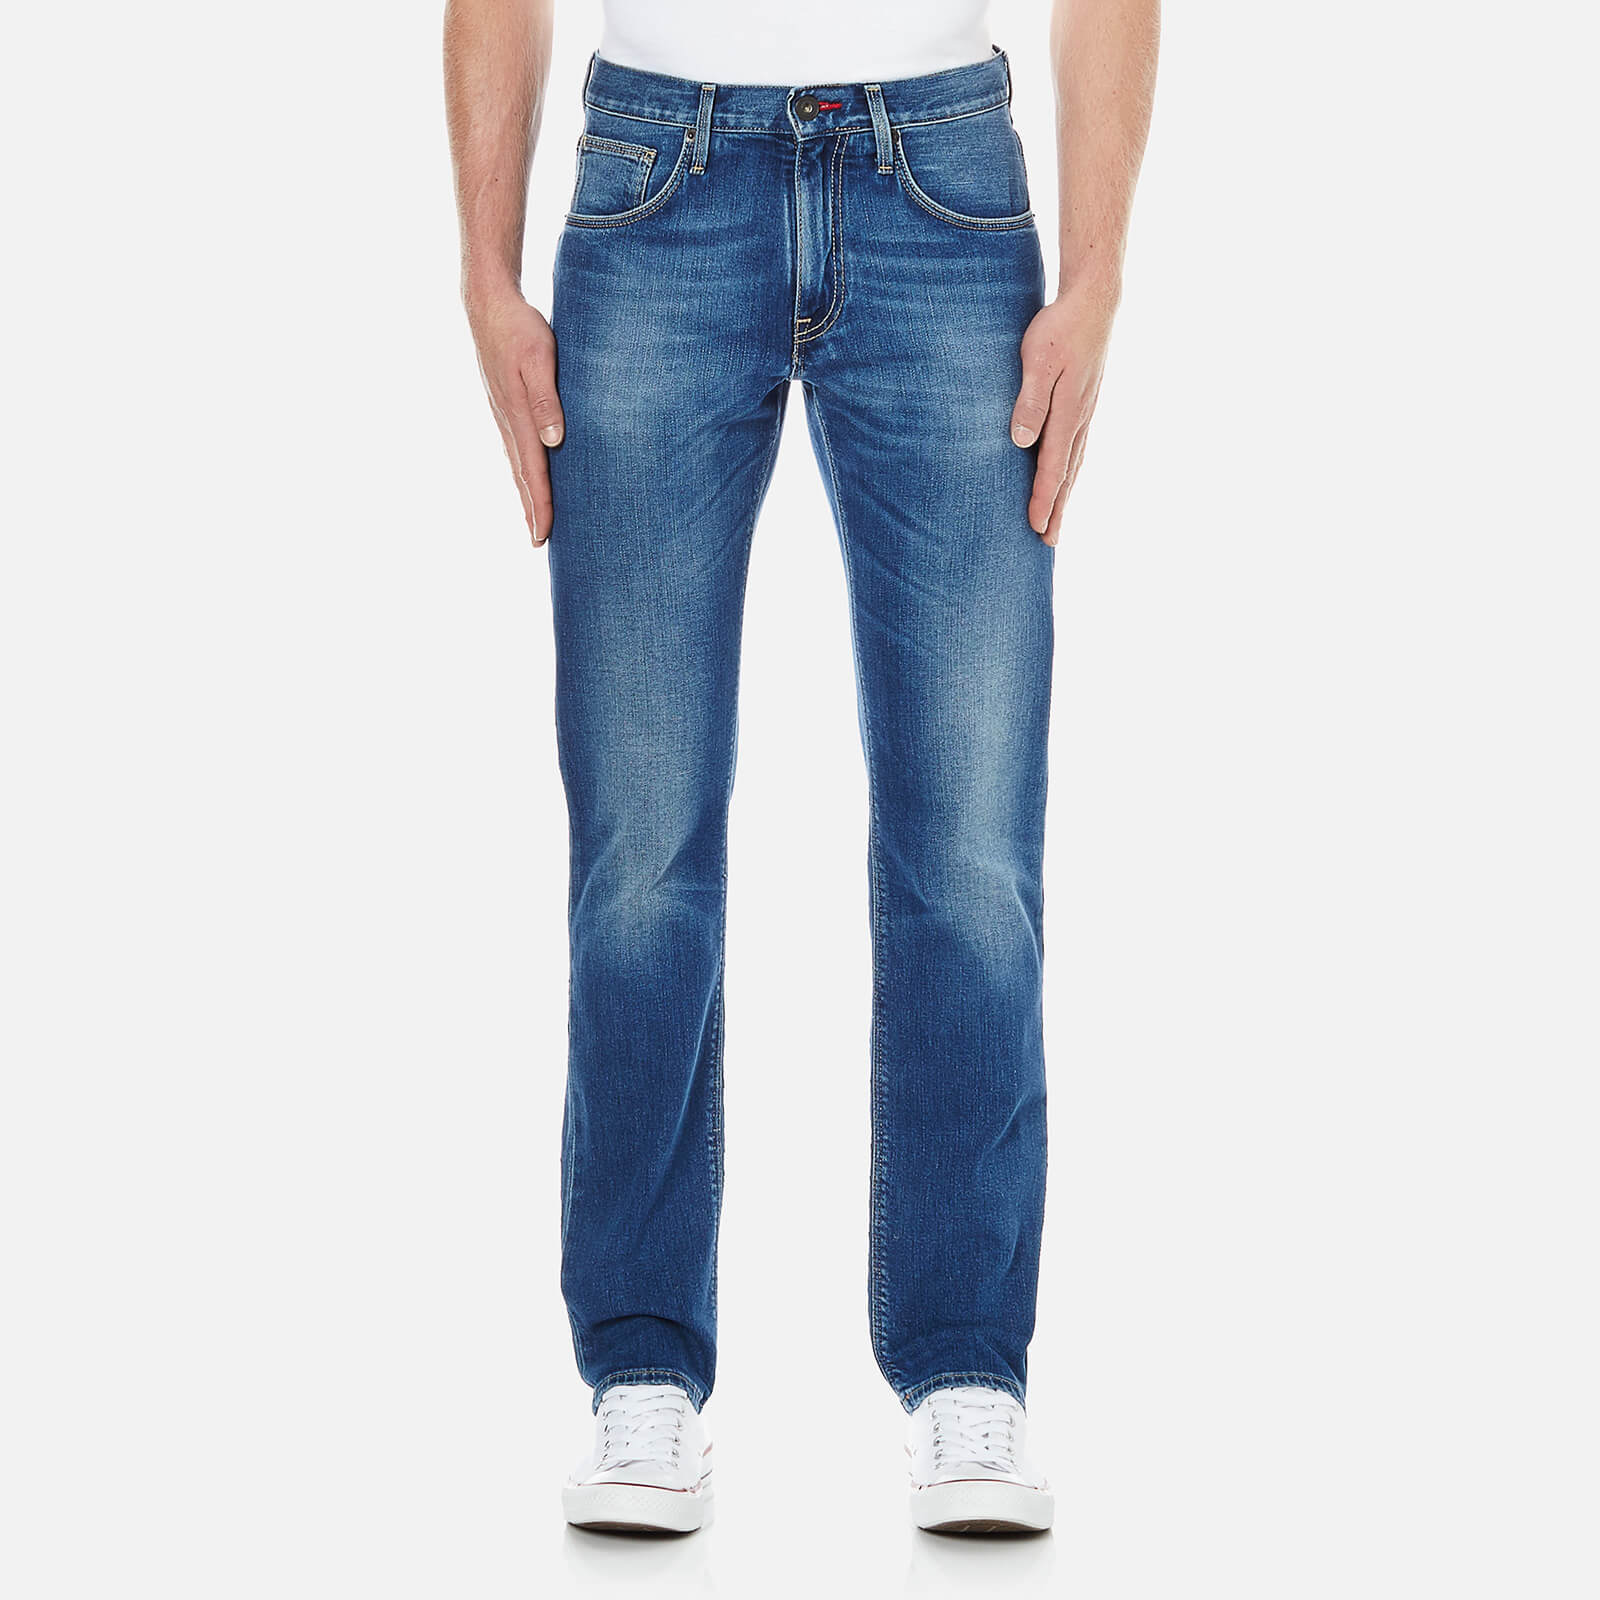 44ef80a2 Tommy Hilfiger Men's Denton Straight Leg Denim Jean - Light Blue Mens  Clothing | TheHut.com